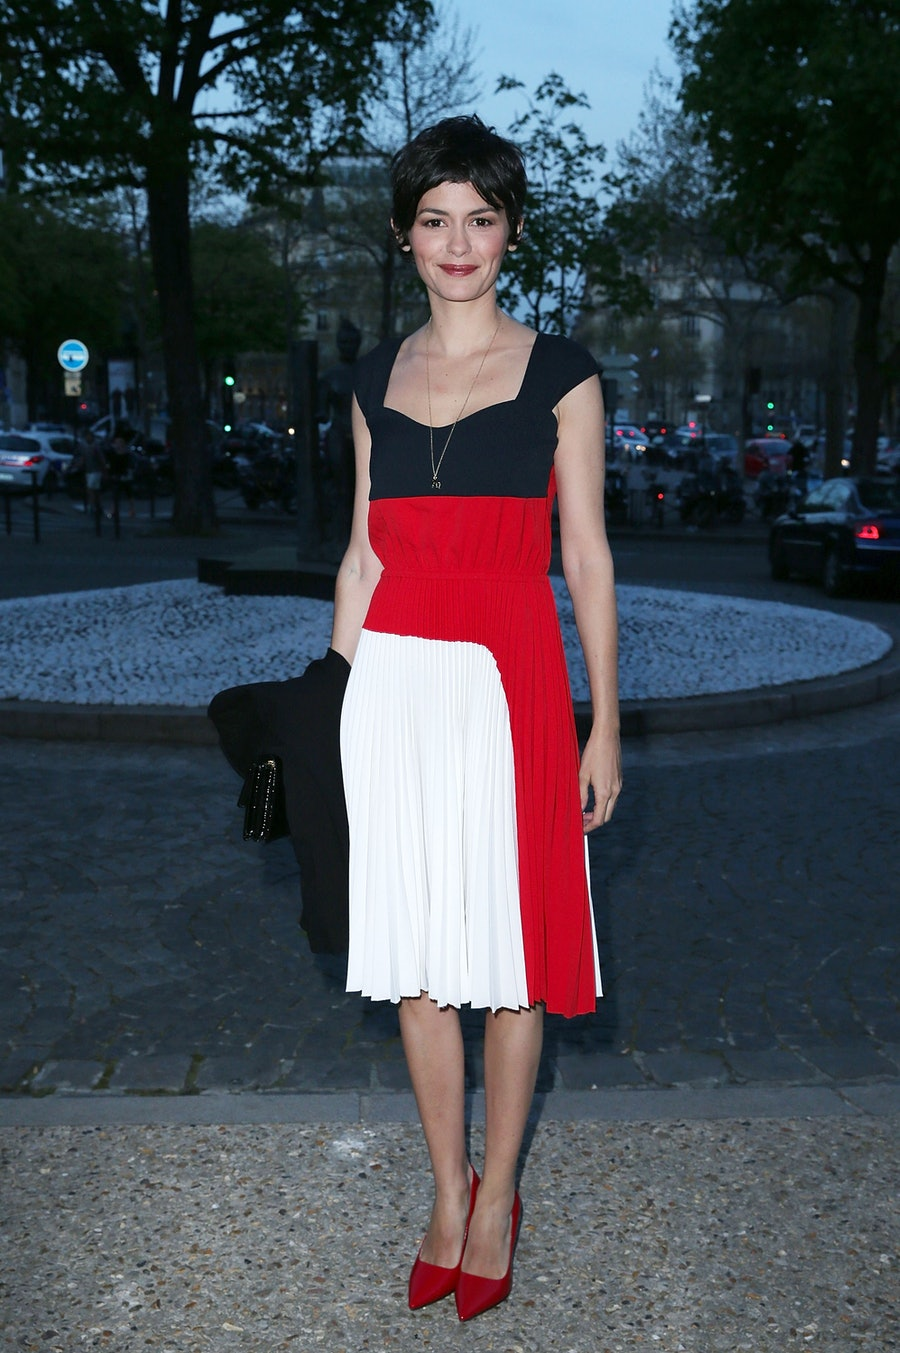 Audrey Tautou at the UNITAID party